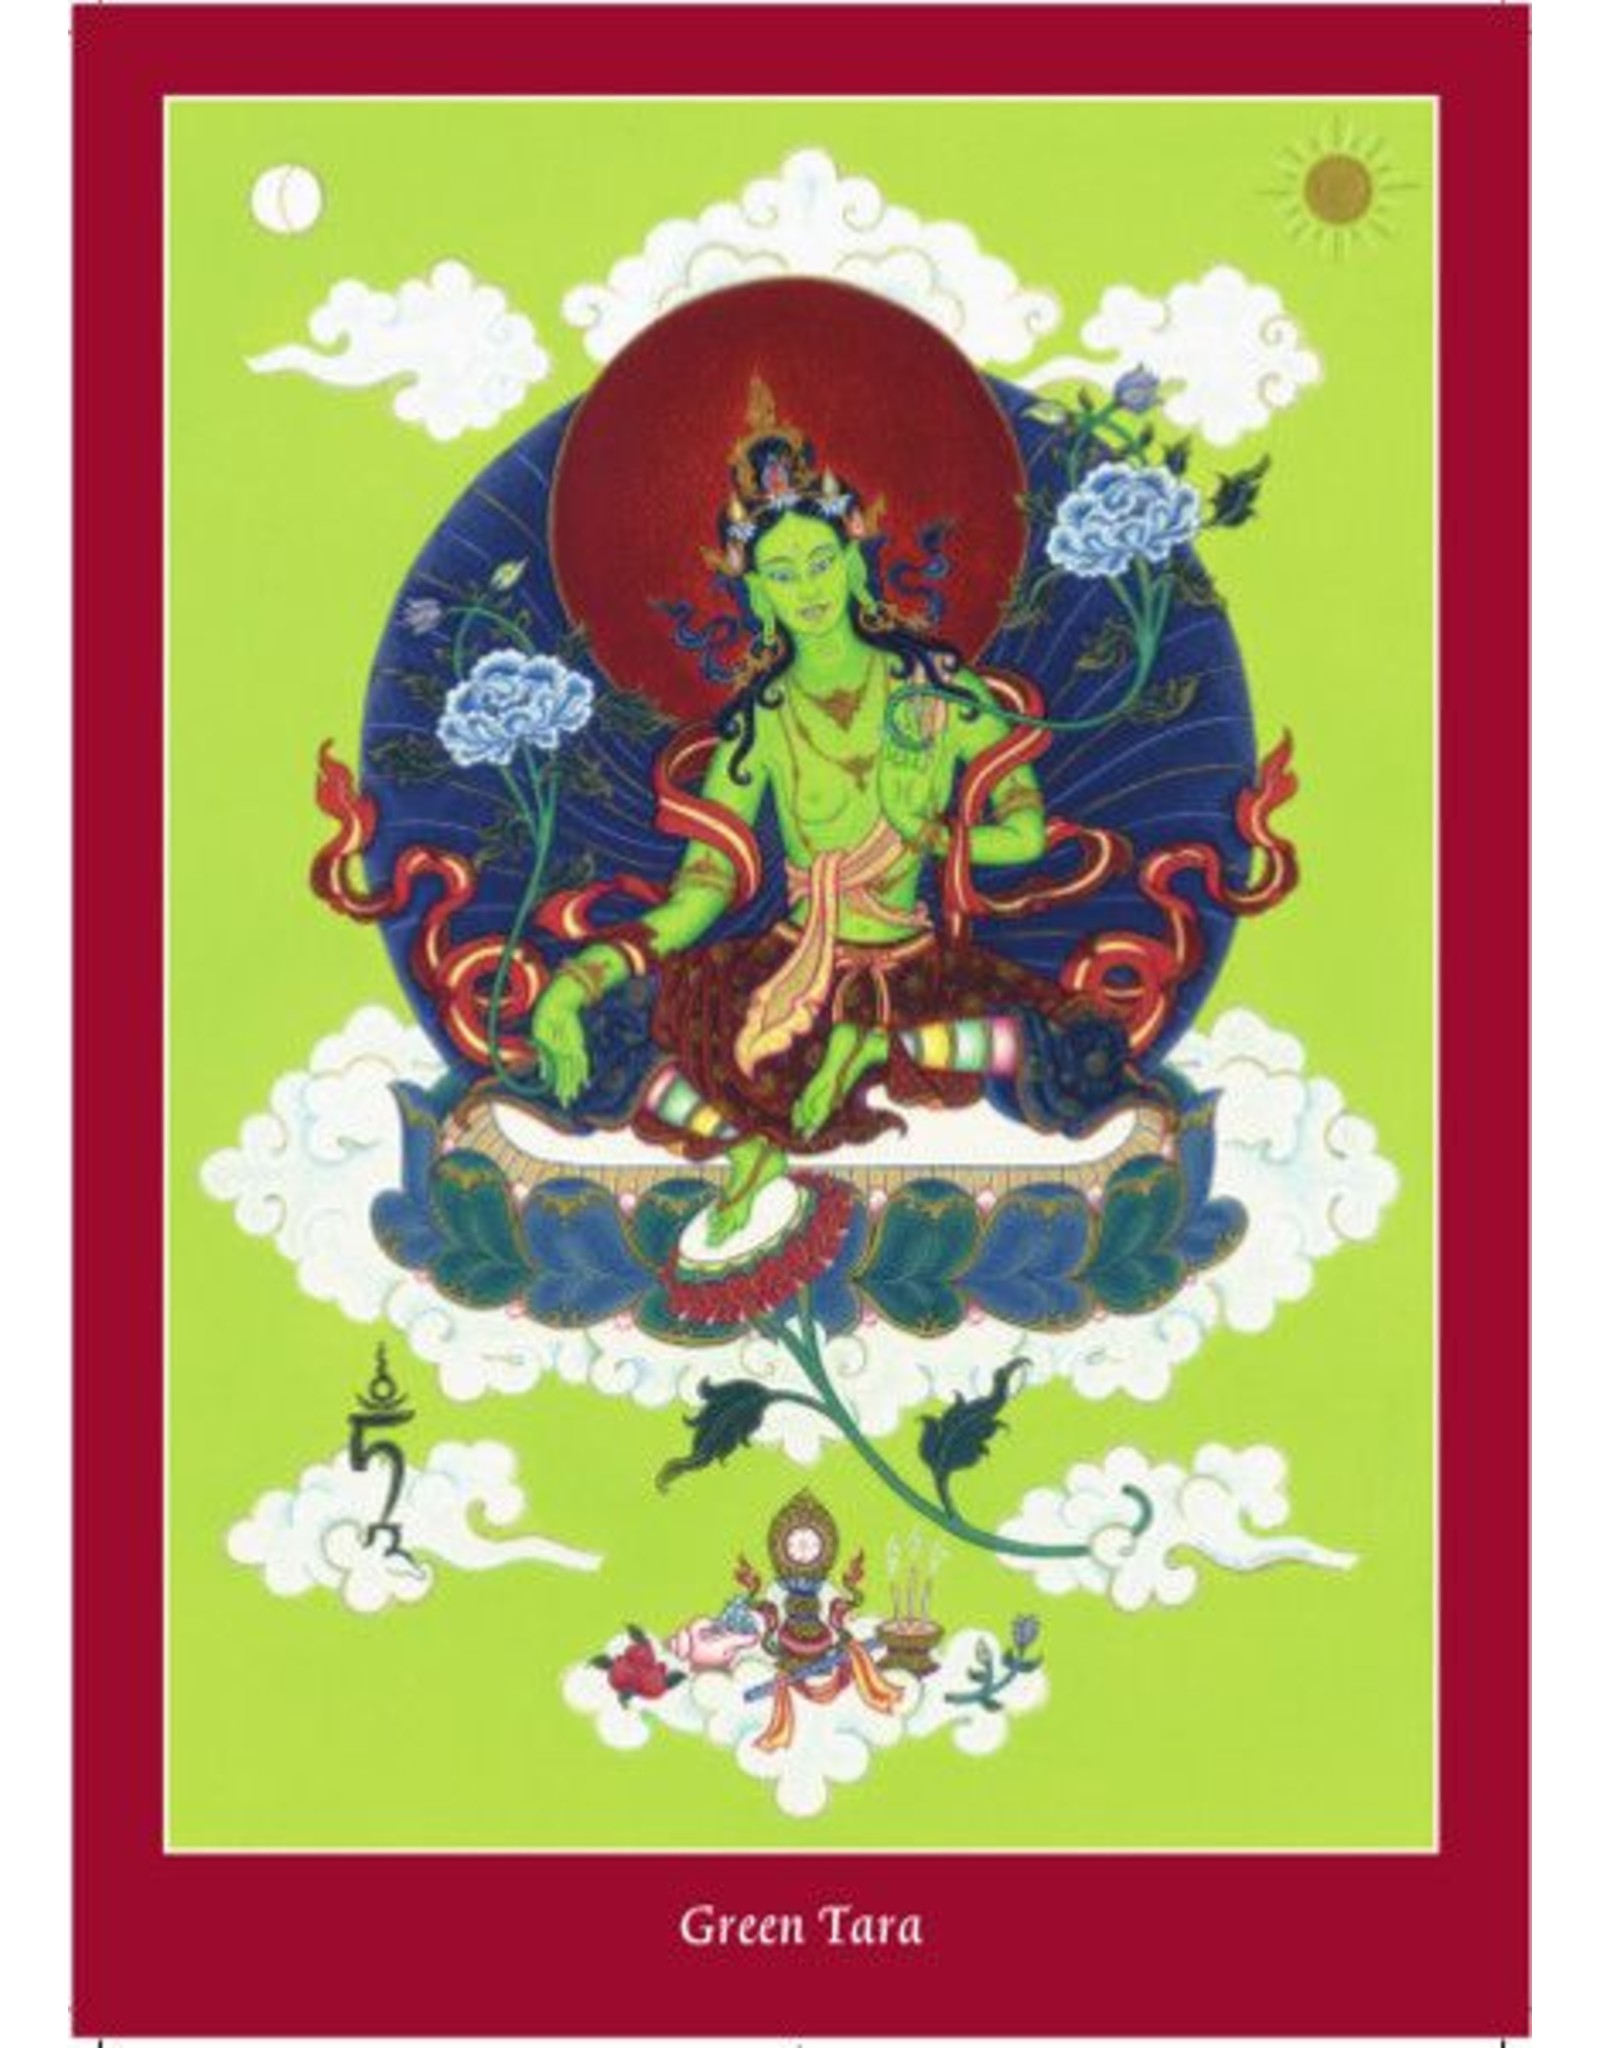 Tibetan Buddhist Art postcard Green Tara